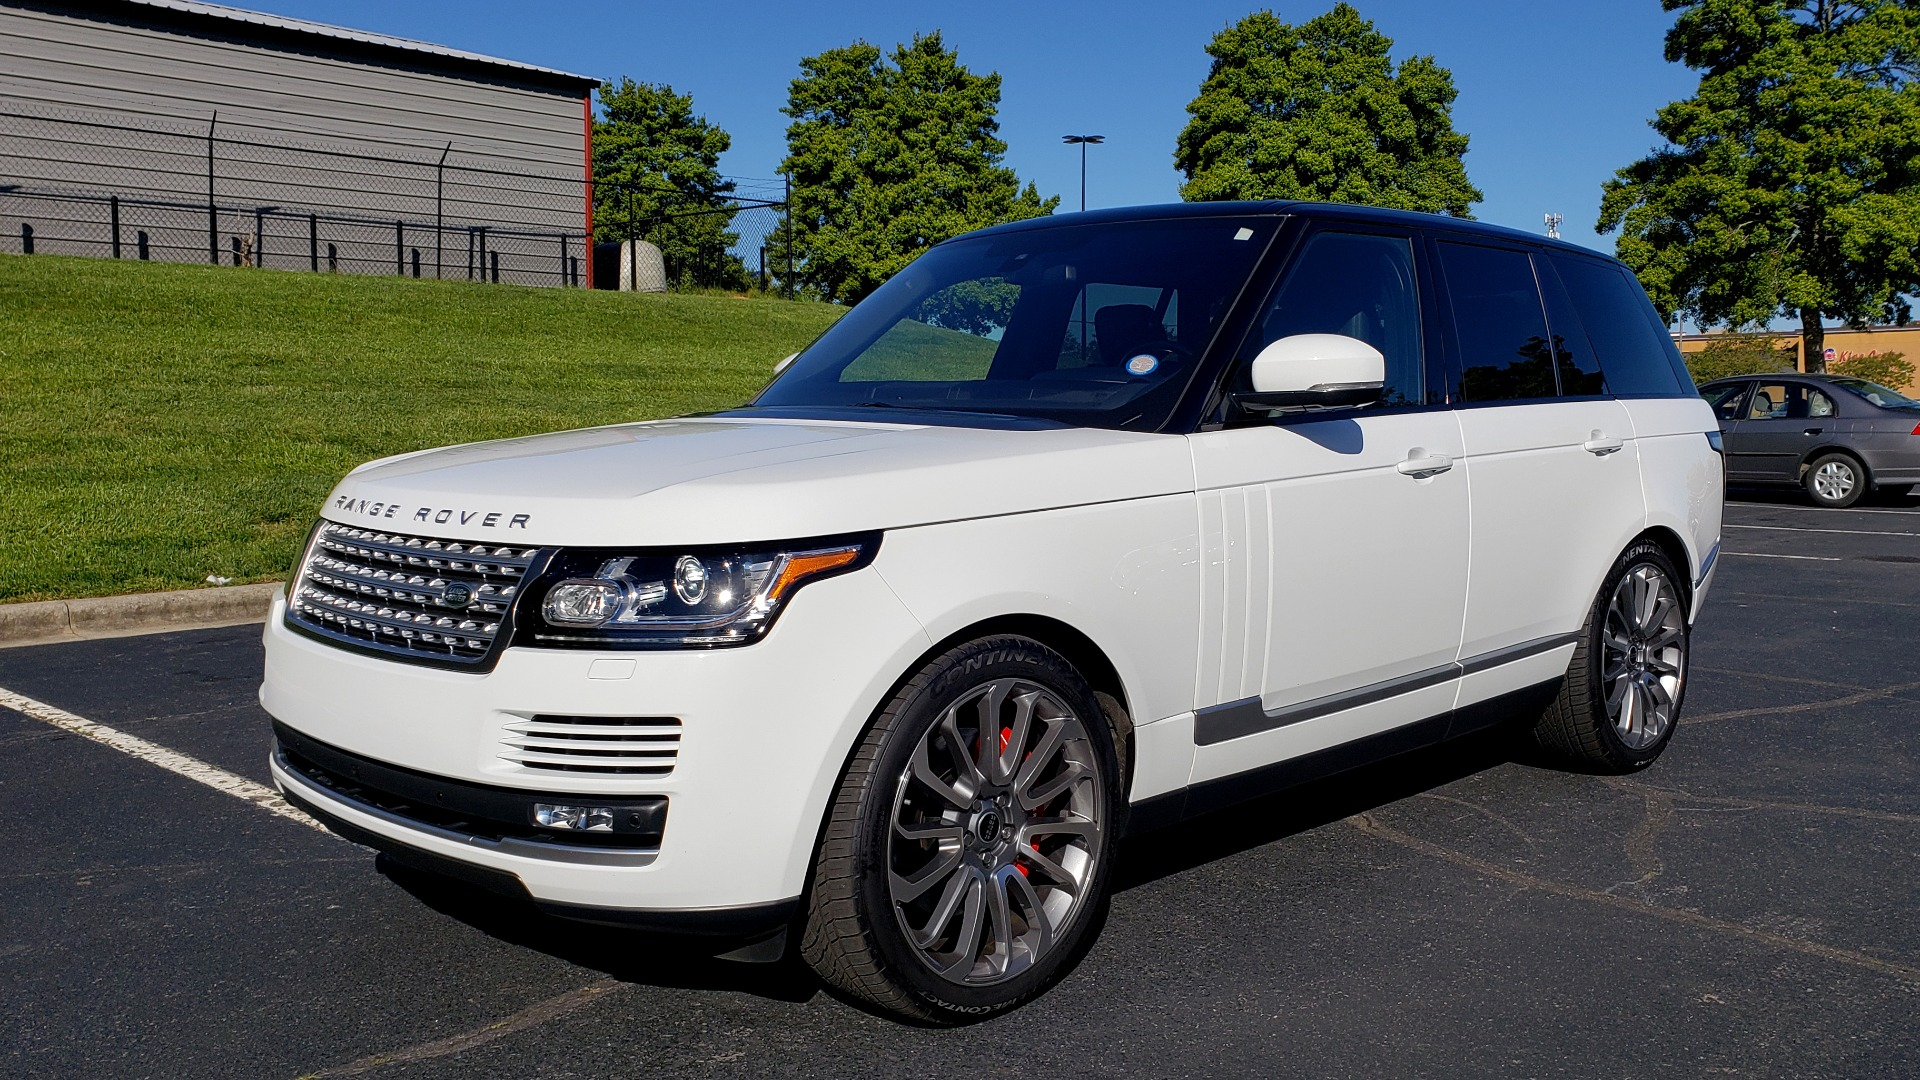 Used 2016 Land Rover RANGE ROVER HSE / AWD / SC V6 / NAV / VISION ASST / PANO-ROOF / BSM for sale $47,495 at Formula Imports in Charlotte NC 28227 1